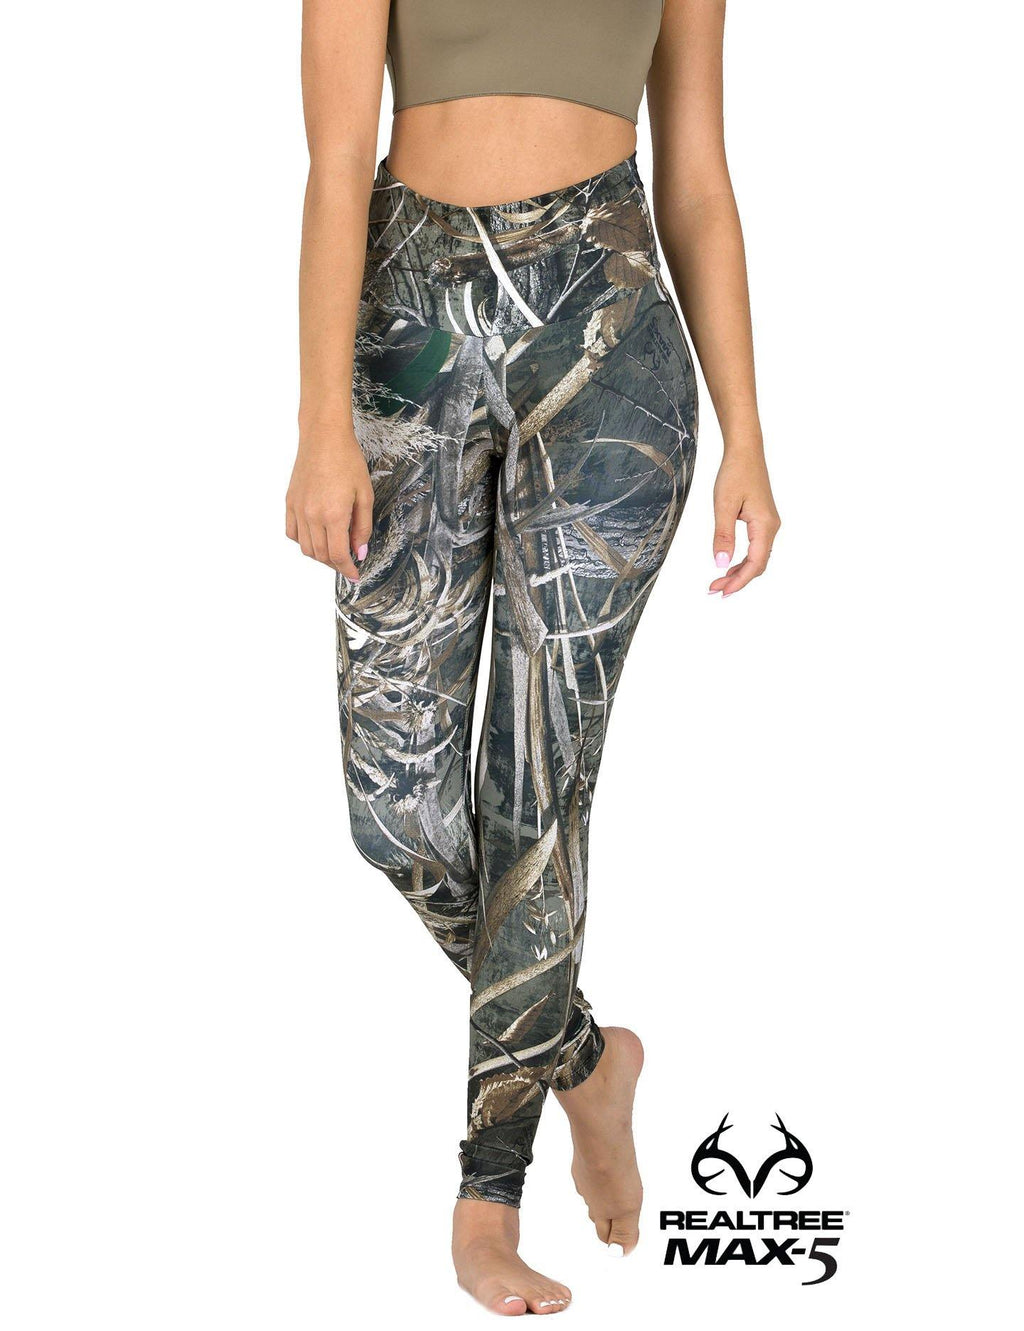 Apsara Leggings High Waist Full Length, Realtree Max-5